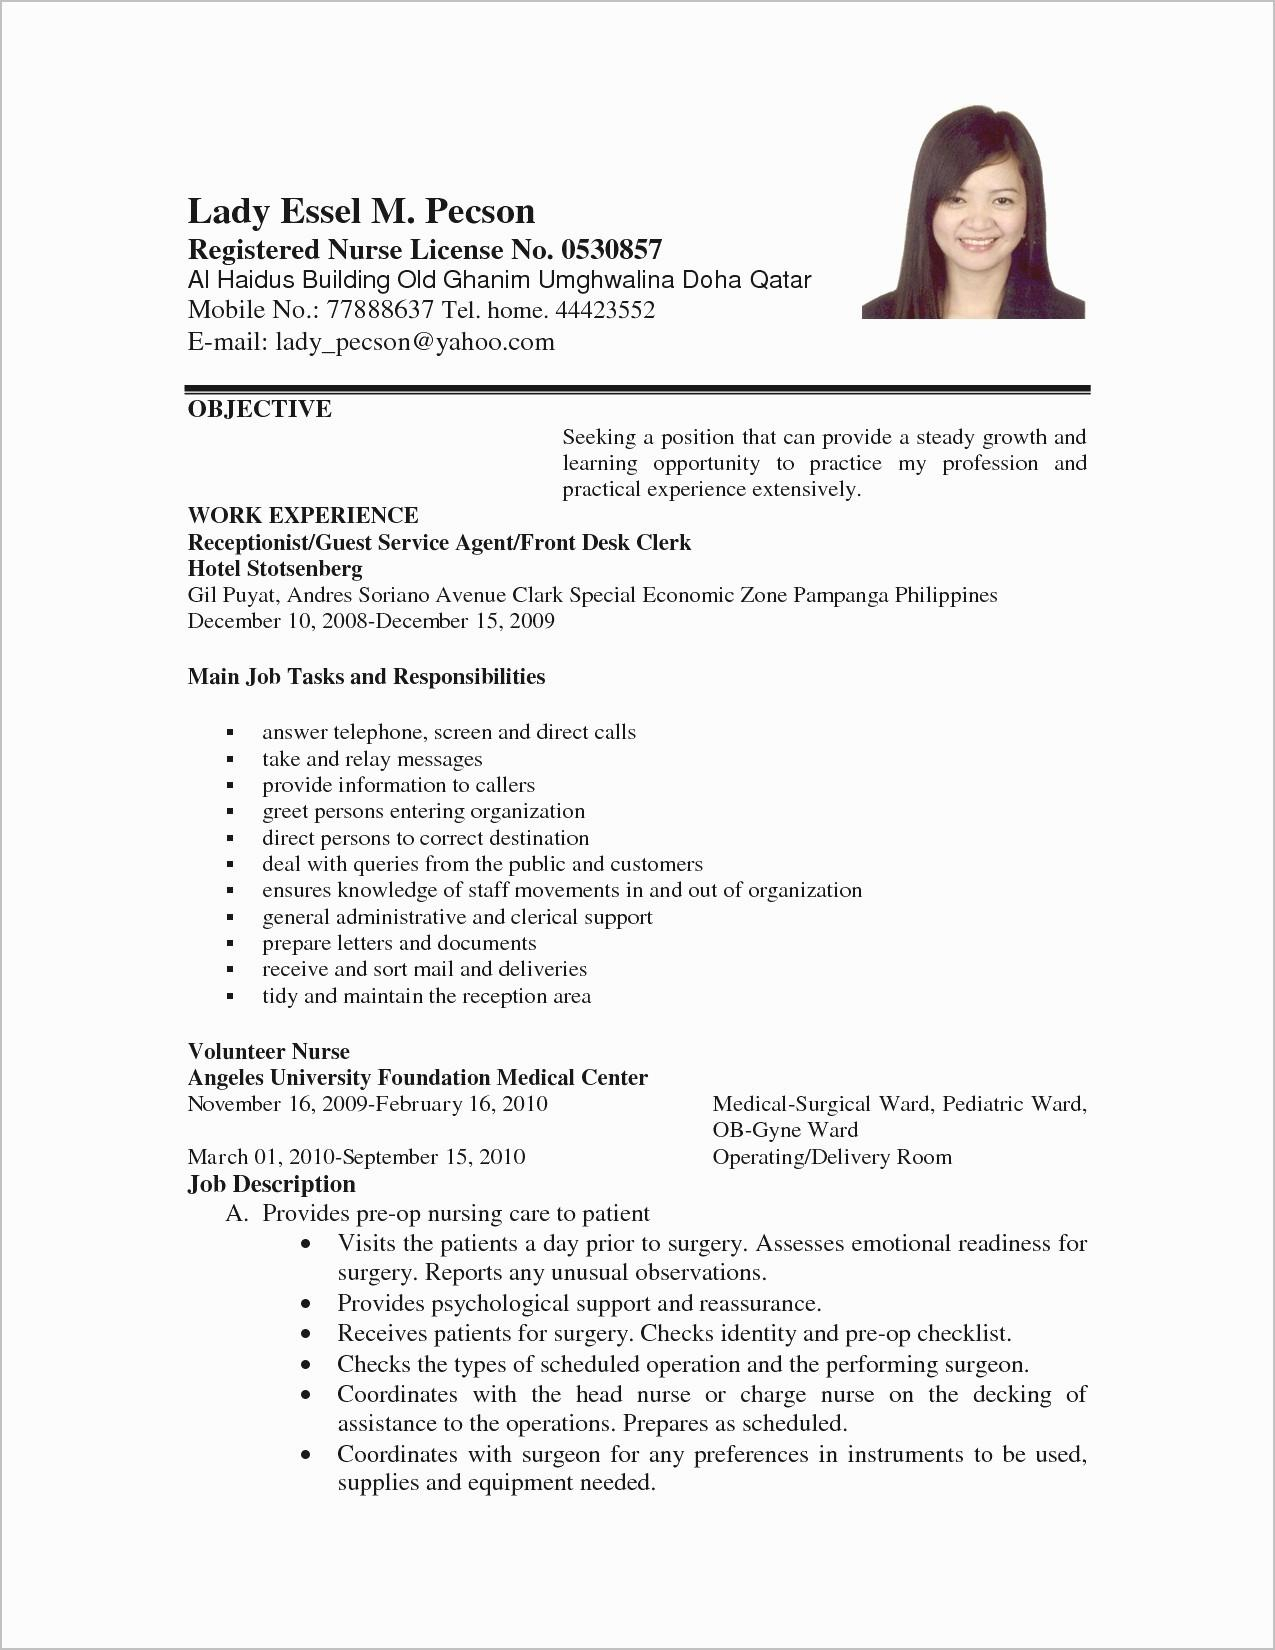 Resume Examples for Receptionist Job - Disney Cover Letter Awesome Lovely Resume Pdf Beautiful Resume